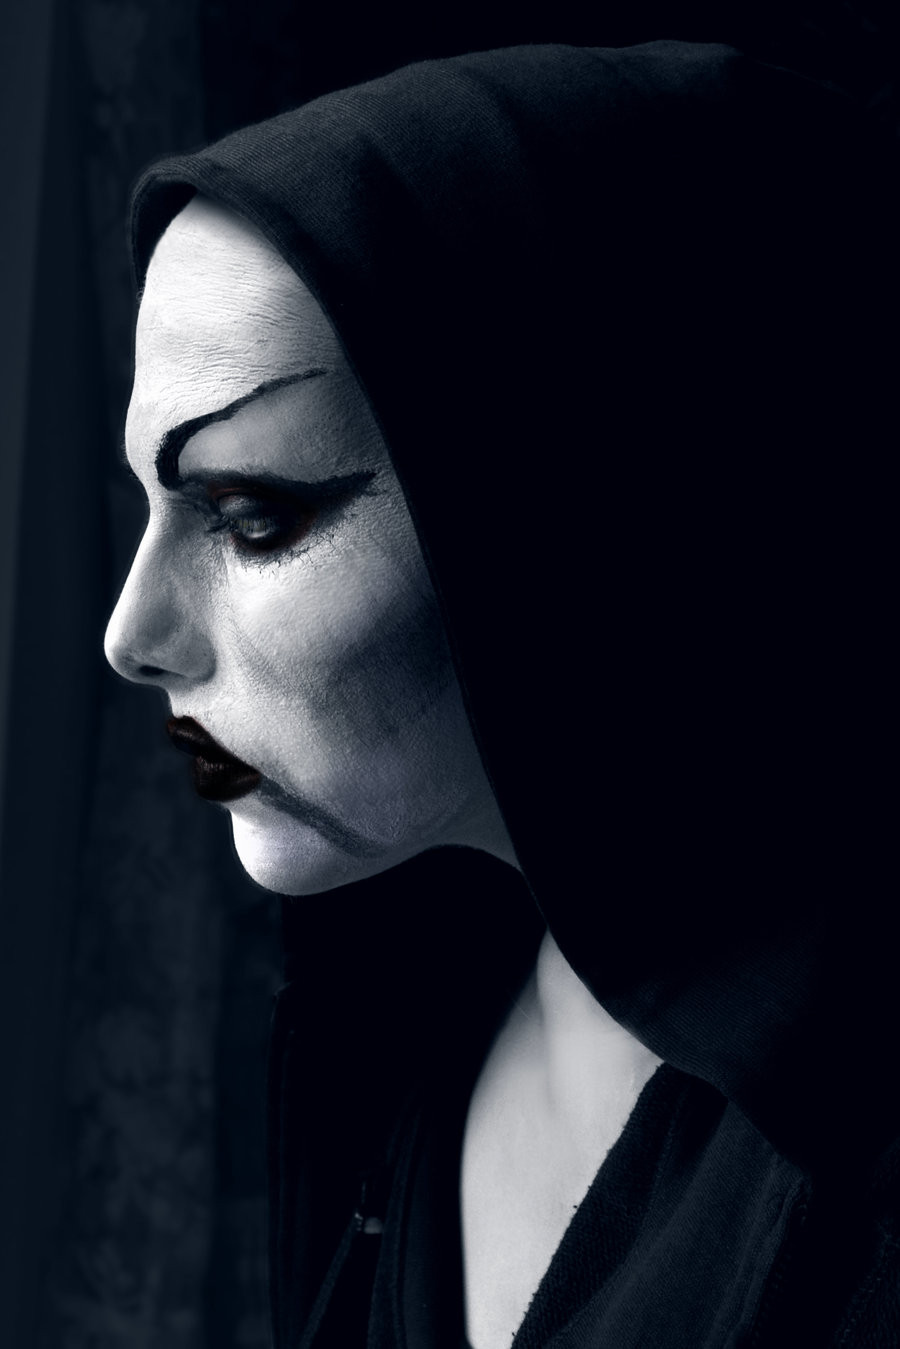 Asajj Ventress- Through Darkness